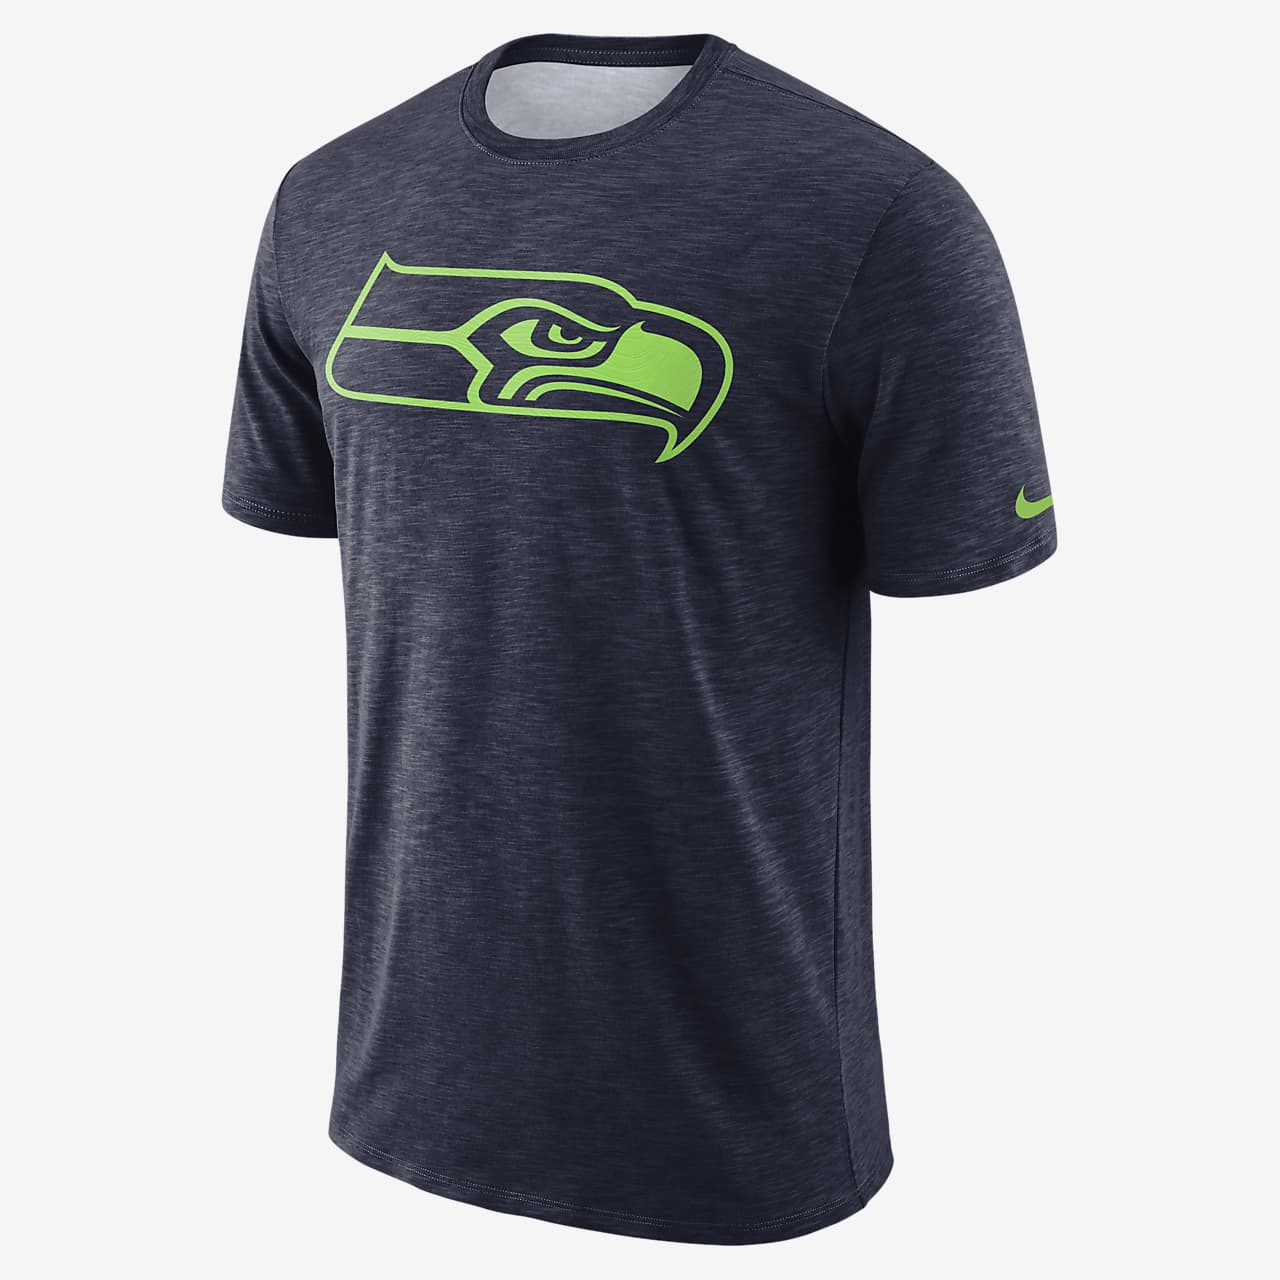 T-shirt Nike Dri-FIT Legend On-Field (NFL Seahawks) - Uomo